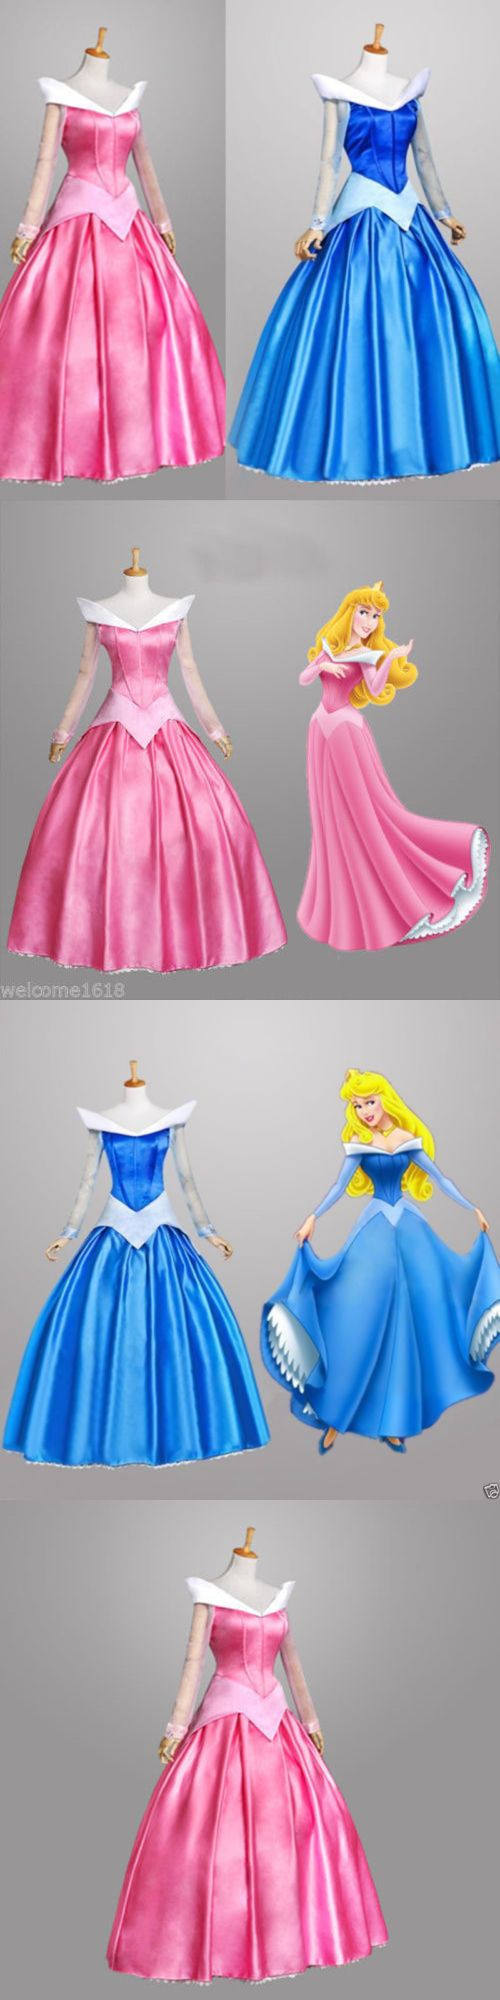 Halloween Costumes Women: Hot Sleeping Beauty Princess Aurora Costume Party Dress Pink Adult Size S-Xl -> BUY IT NOW ONLY: $59.99 on eBay!